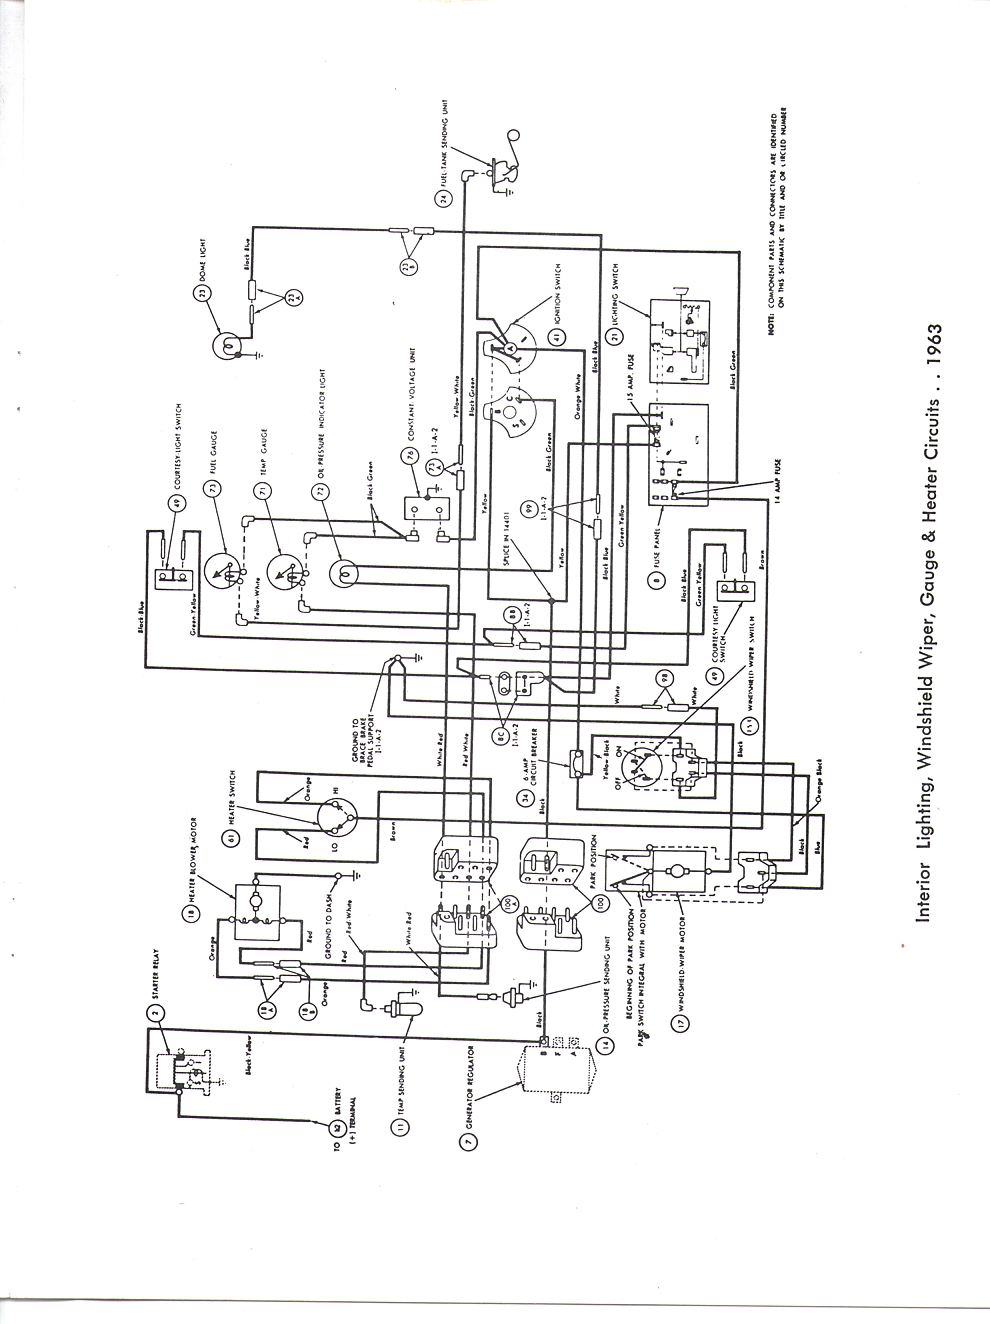 97 Grand Marquis Engine Diagram together with Tachometer Wiring Diagram 1999 Chevy Blazer furthermore 1998 Suburban Fuse Box additionally Discussion T4231 ds547618 also 2007 Dodge Caliber Fuse Box Diagram Lighter. on 1999 dodge grand caravan fuse box diagram